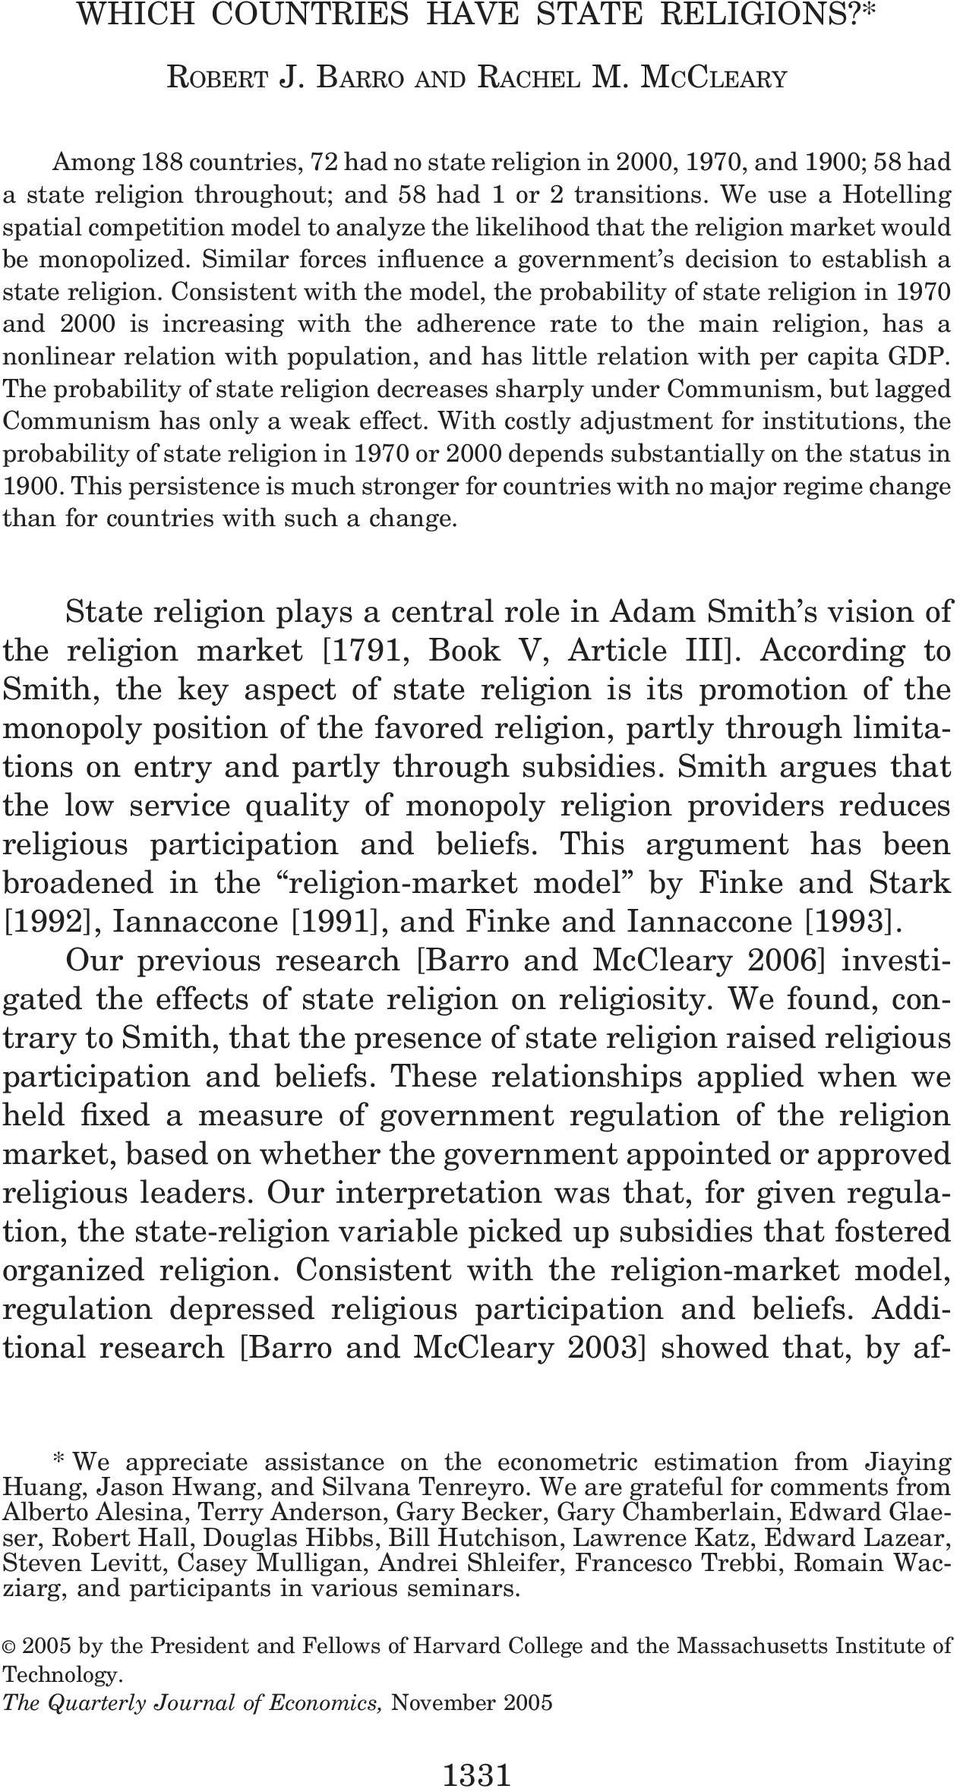 We use a Hotelling spatial competition model to analyze the likelihood that the religion market would be monopolized. Similar forces influence a government s decision to establish a state religion.